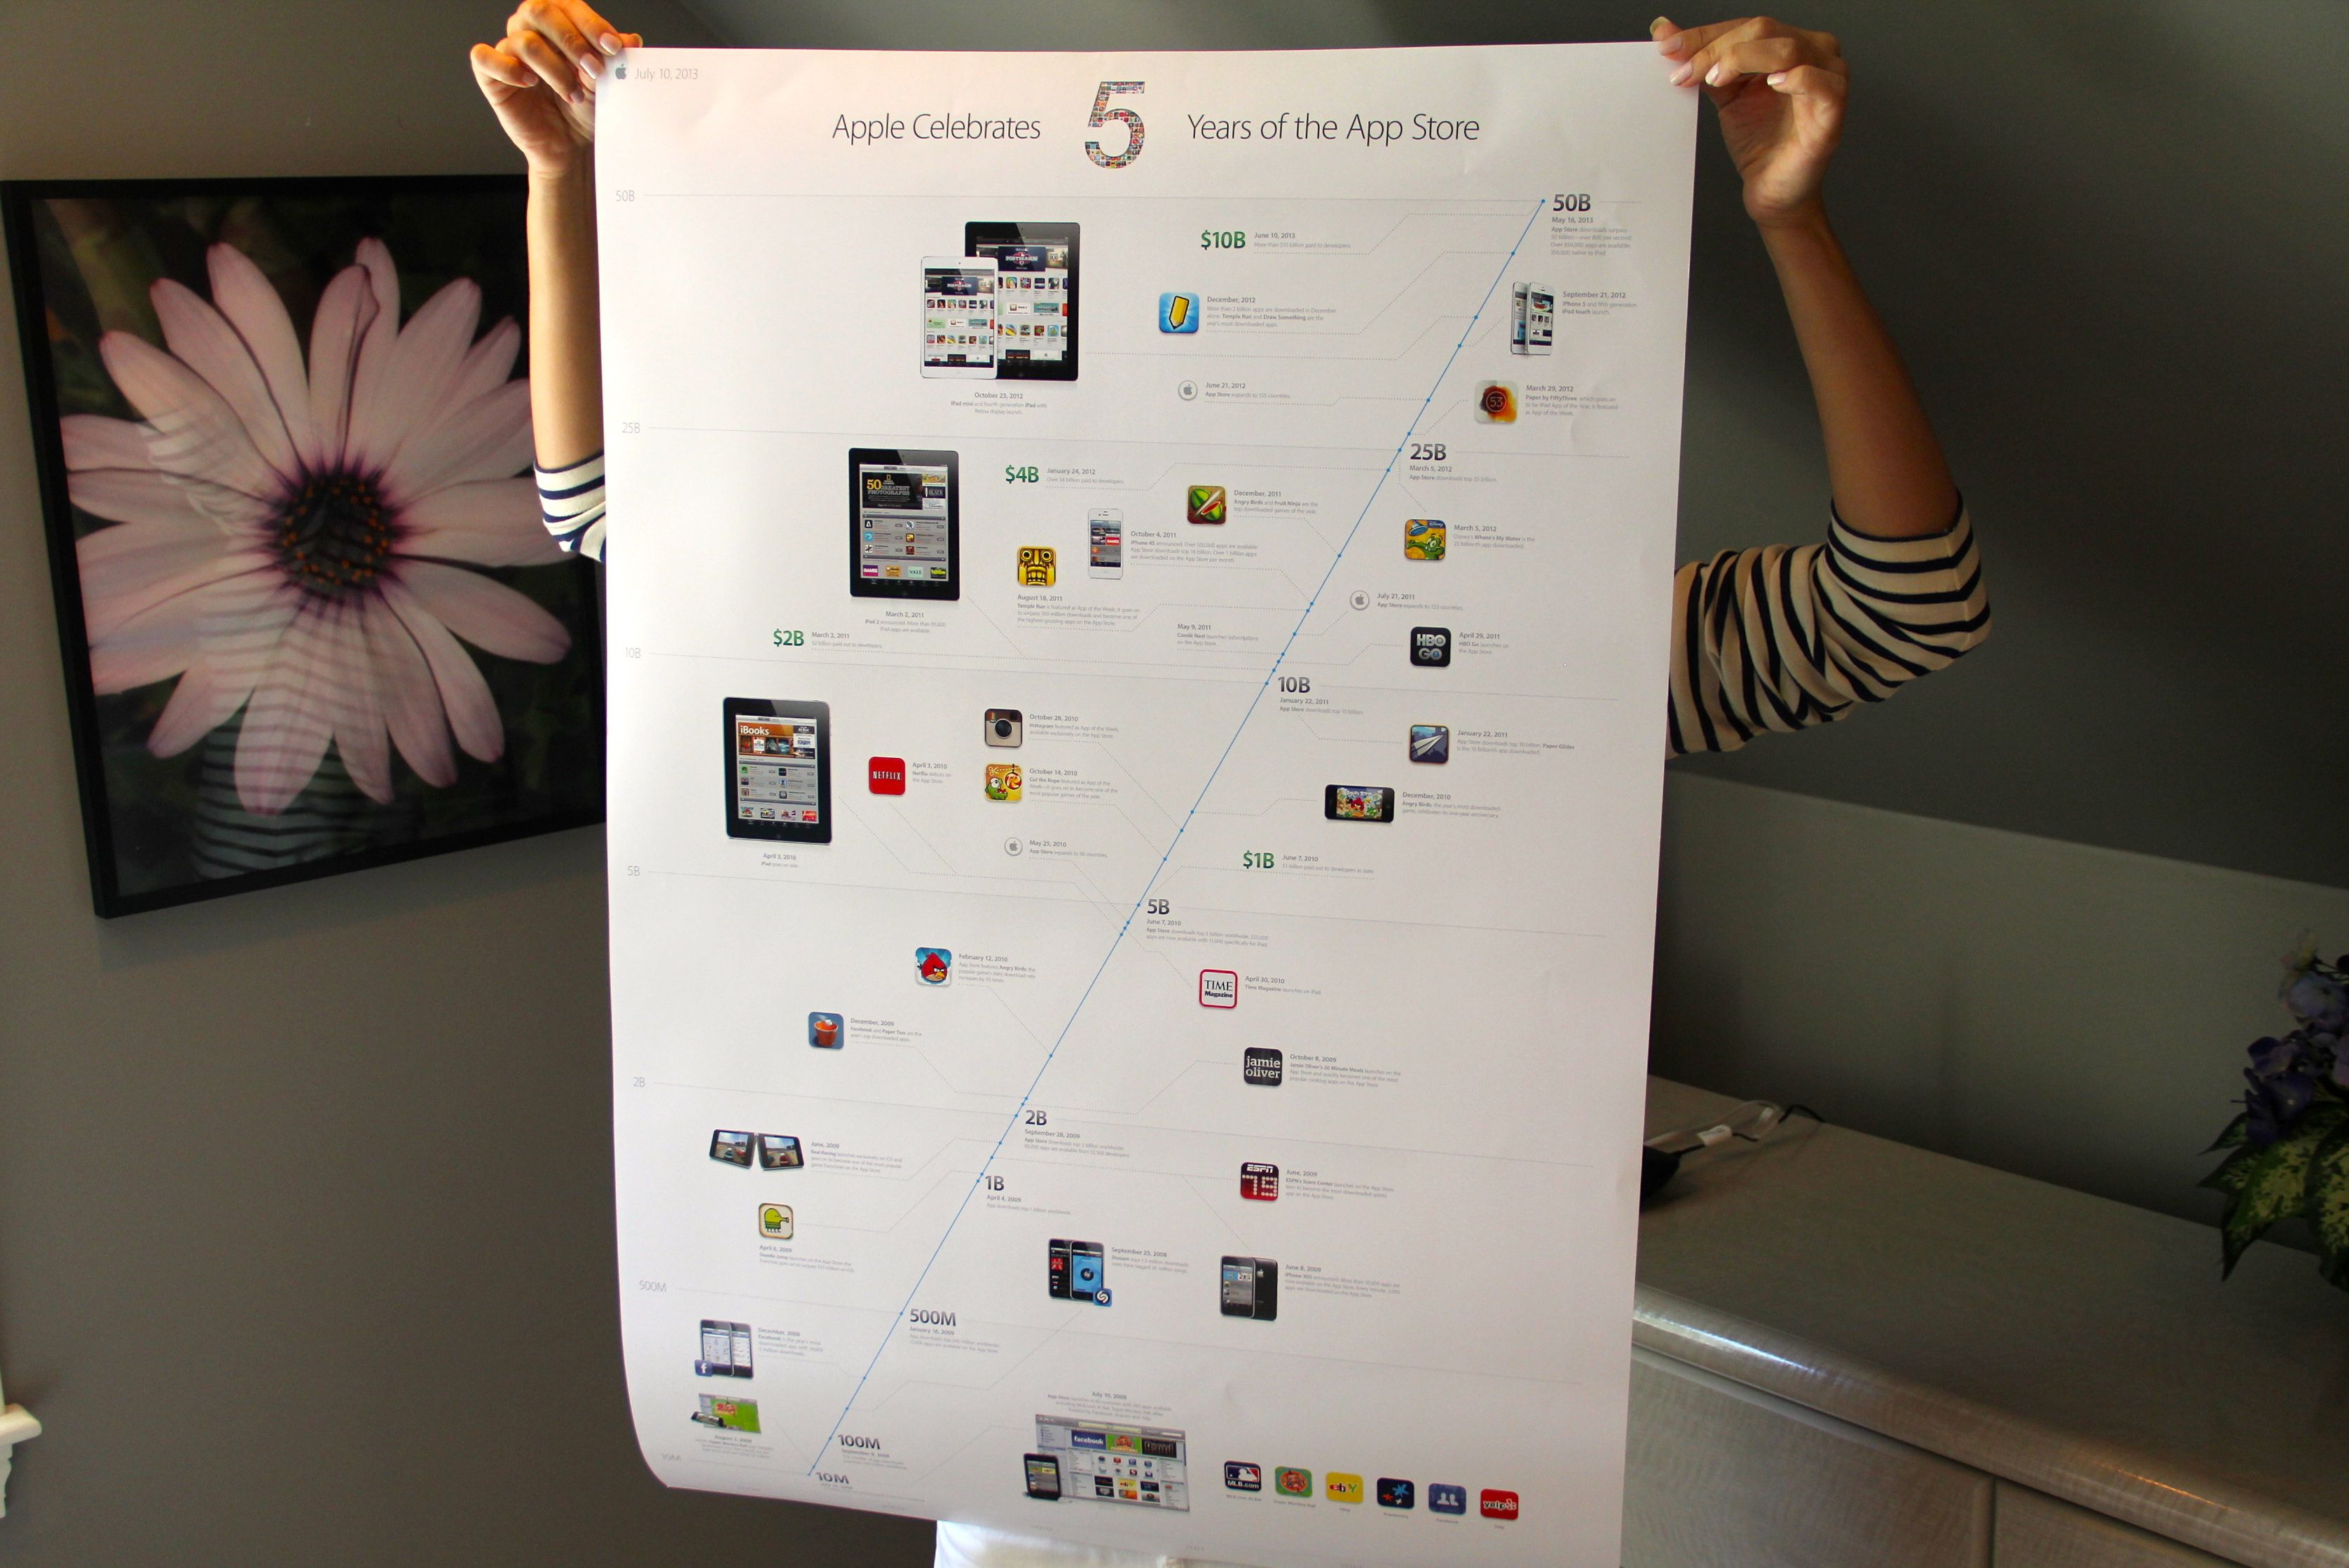 With 50 Billion Apple Apps Downloaded, All I Got Was This Poster